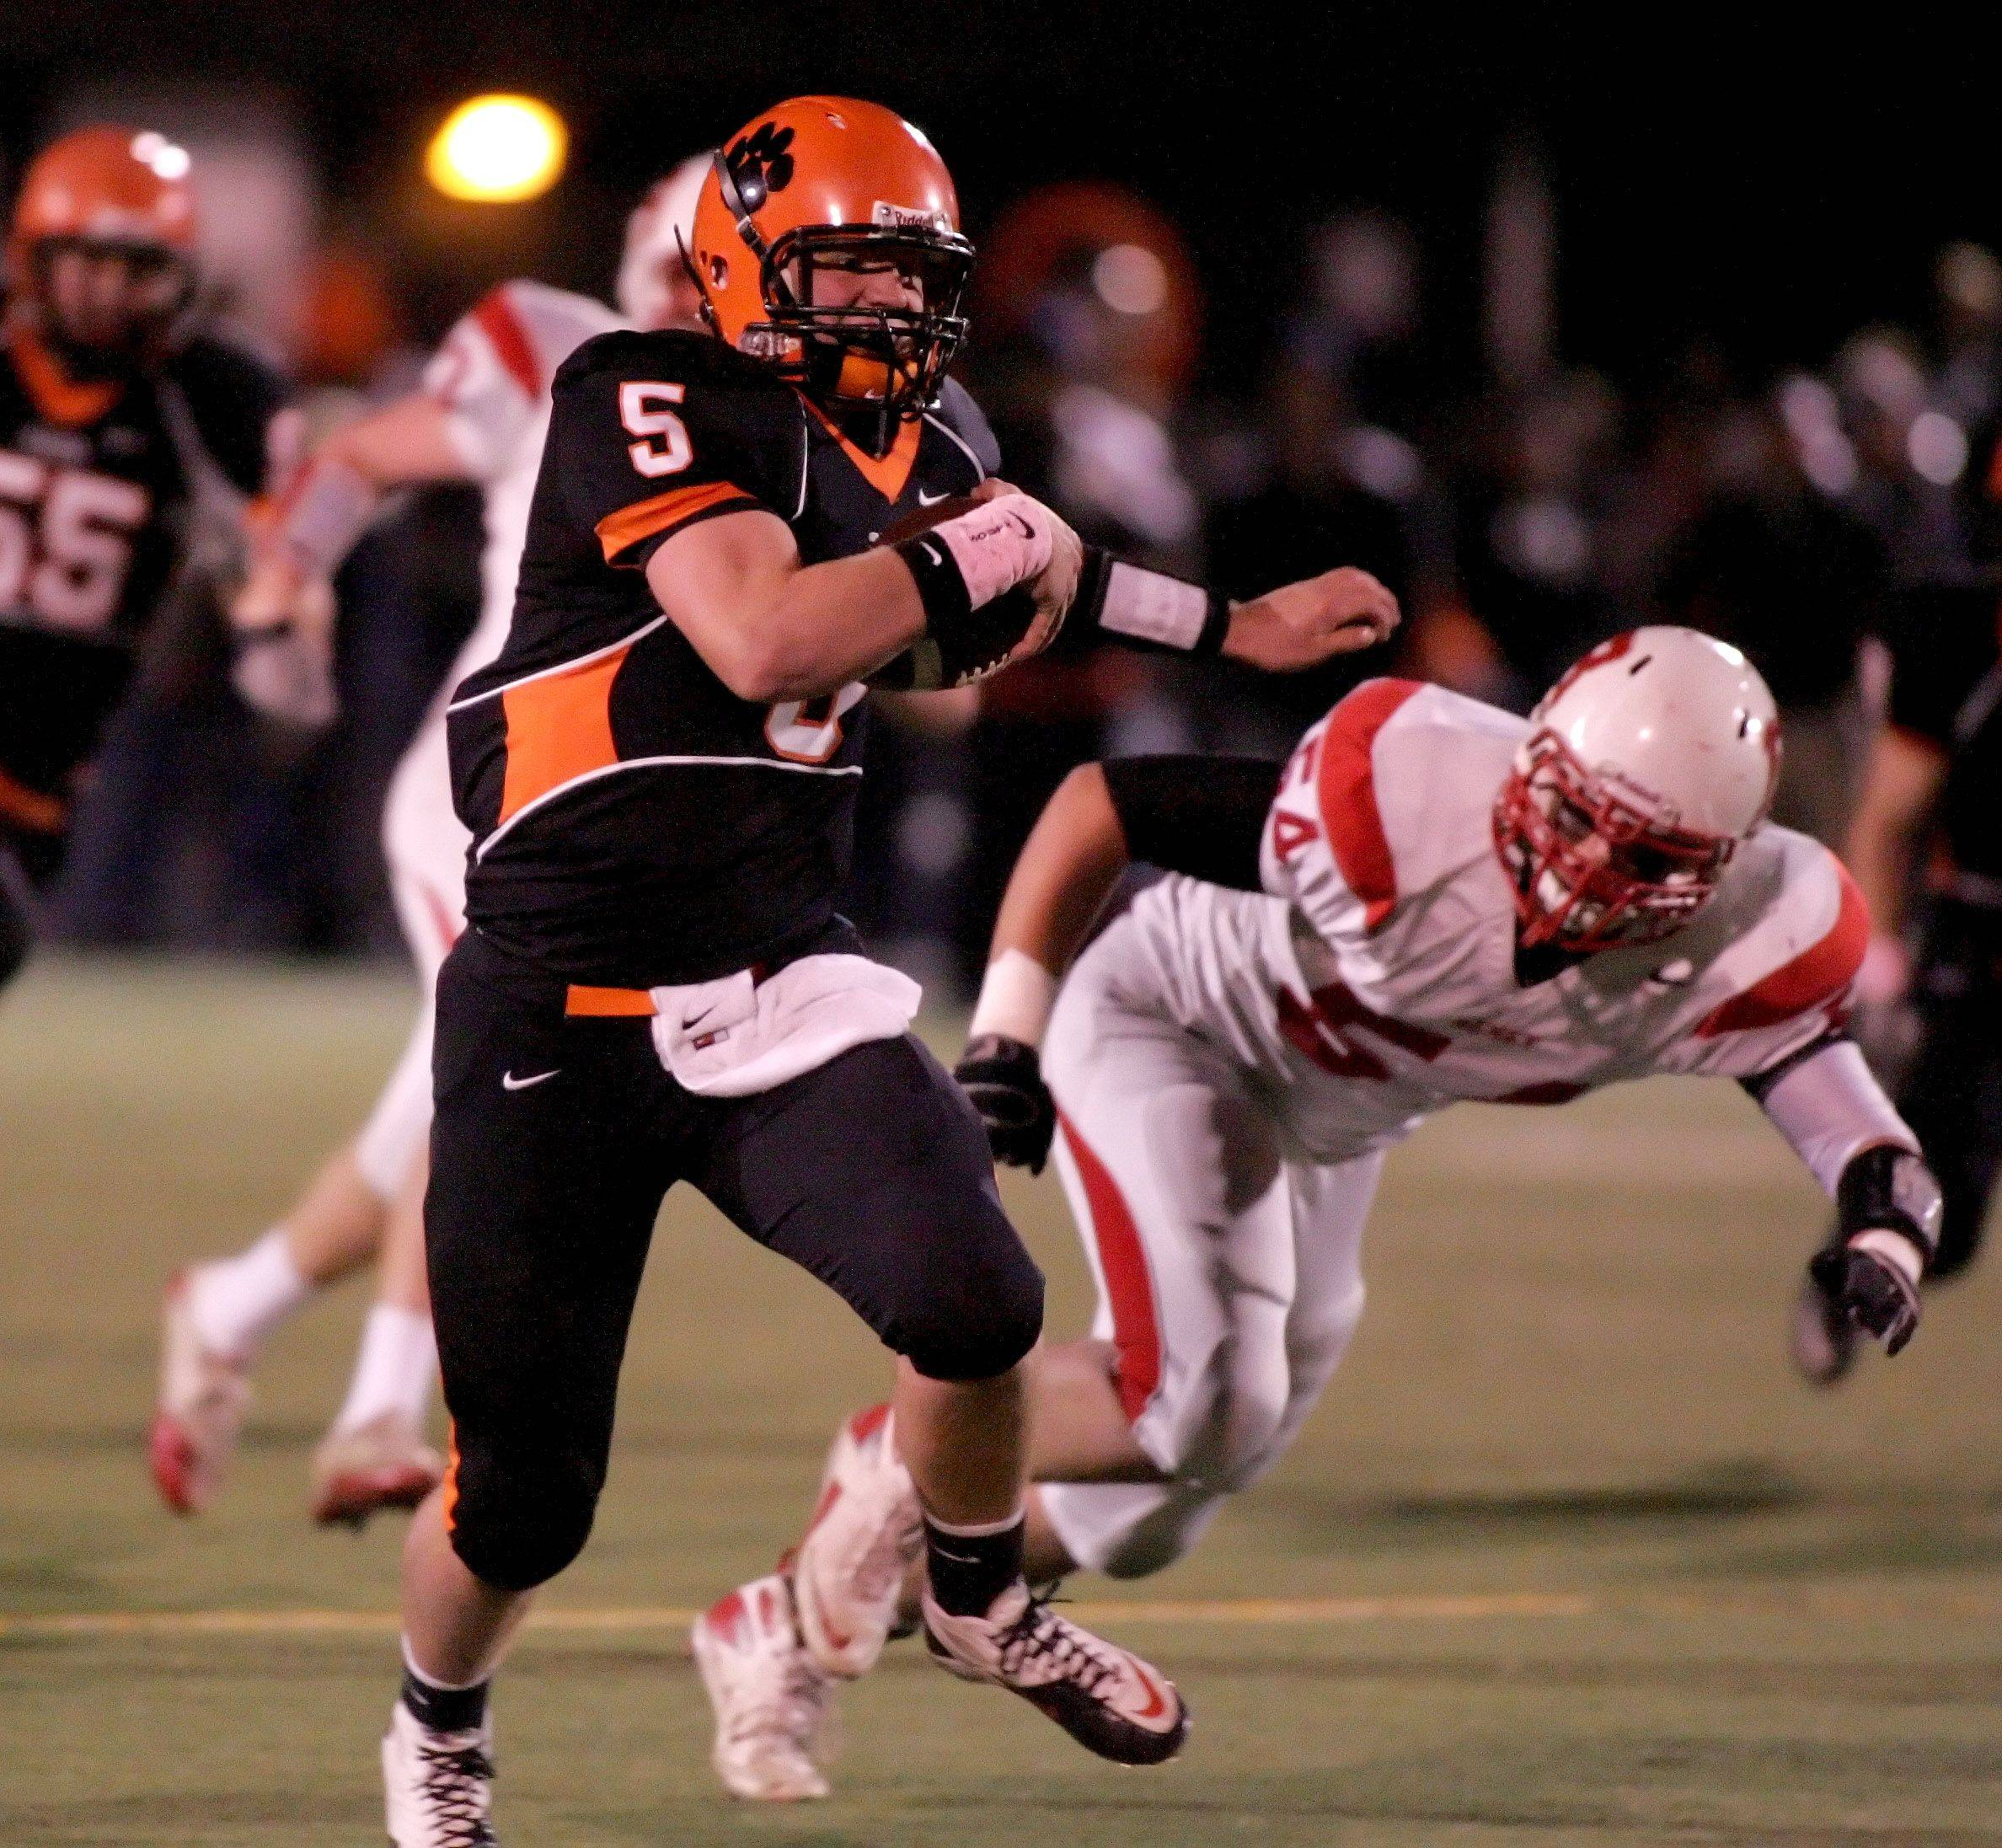 Wheaton Warrenville South quarterback Reilly O'Toole eludes Jeff Schmittgens, right of Benet during playoff football Friday in Wheaton.